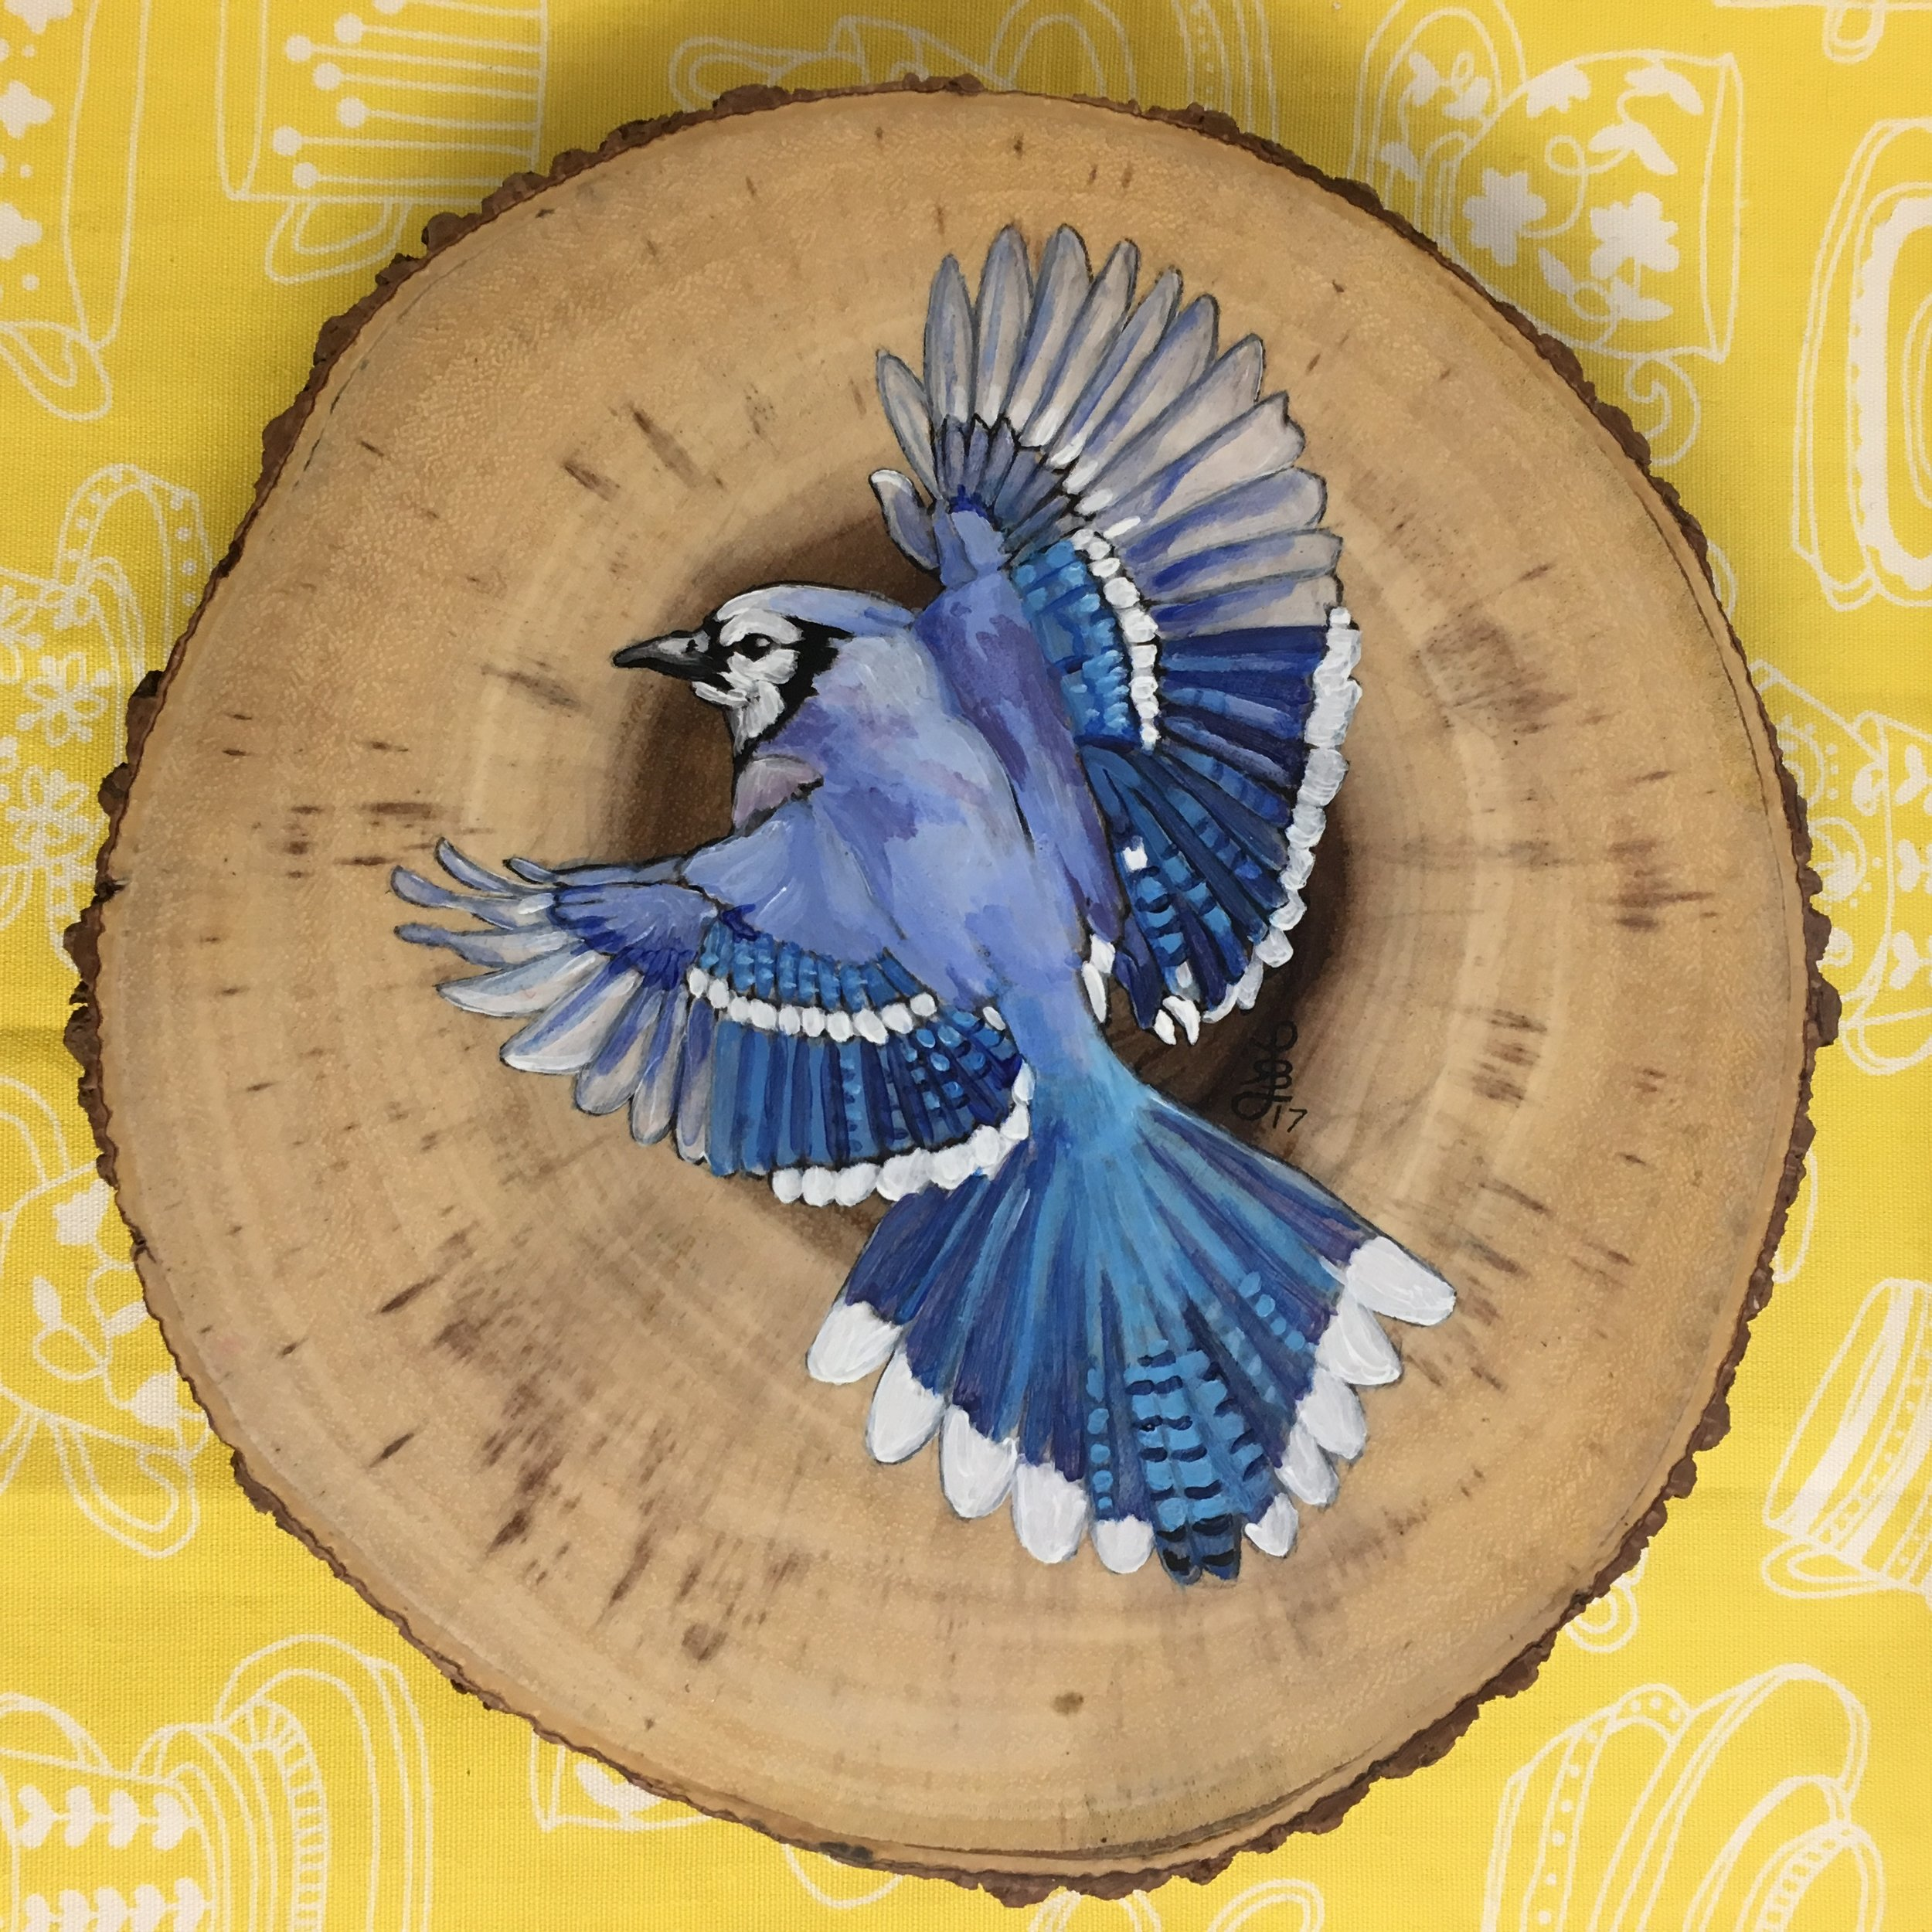 8 inch Blue Jay Serving Tray - Decorate your table in style with this 8 inch acacia wood serving tray with wood legs. Blue Jay is painted with acrylic and sealed with varnish. This tray is for decorative purposes only and not suitable for direct food contact. Wipe clean with a damp cloth, do not soak or put in the dishwasher.$50, plus sales tax and shipping